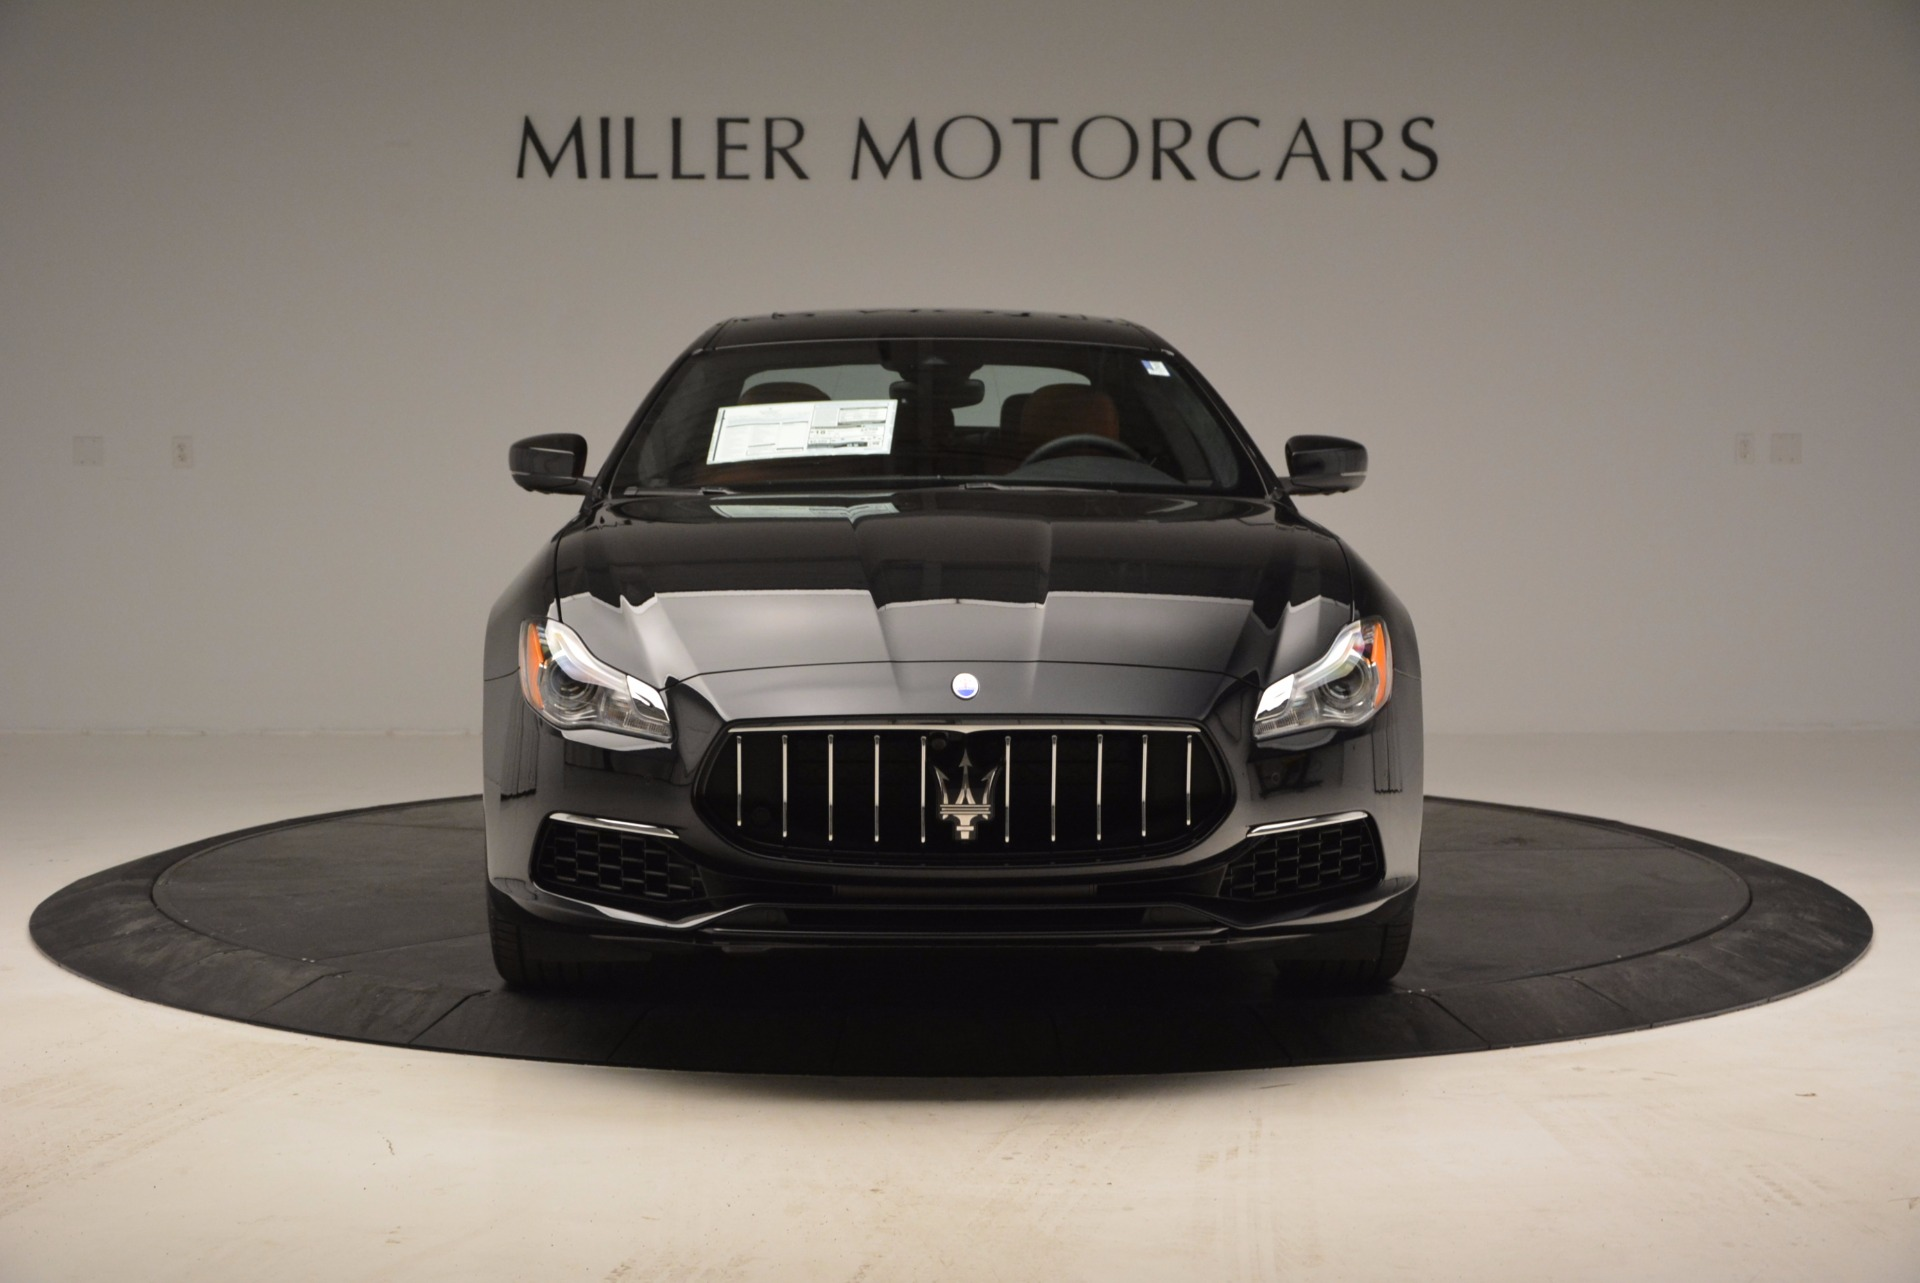 New 2017 Maserati Quattroporte S Q4 GranLusso For Sale In Greenwich, CT 716_p12